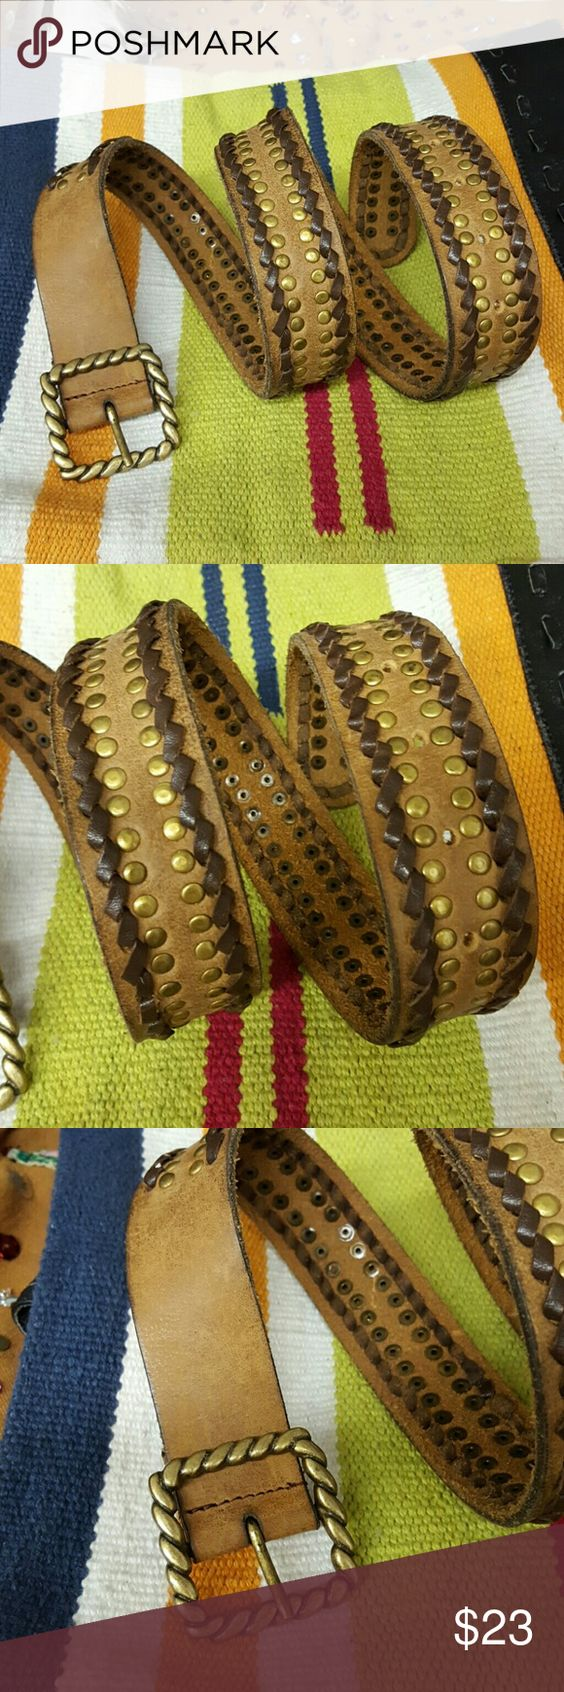 BOHO style leather belt. Laced and studded BOHO style leather belt. Laced and studded. Brushed gold buckle and studs. Accessories Belts